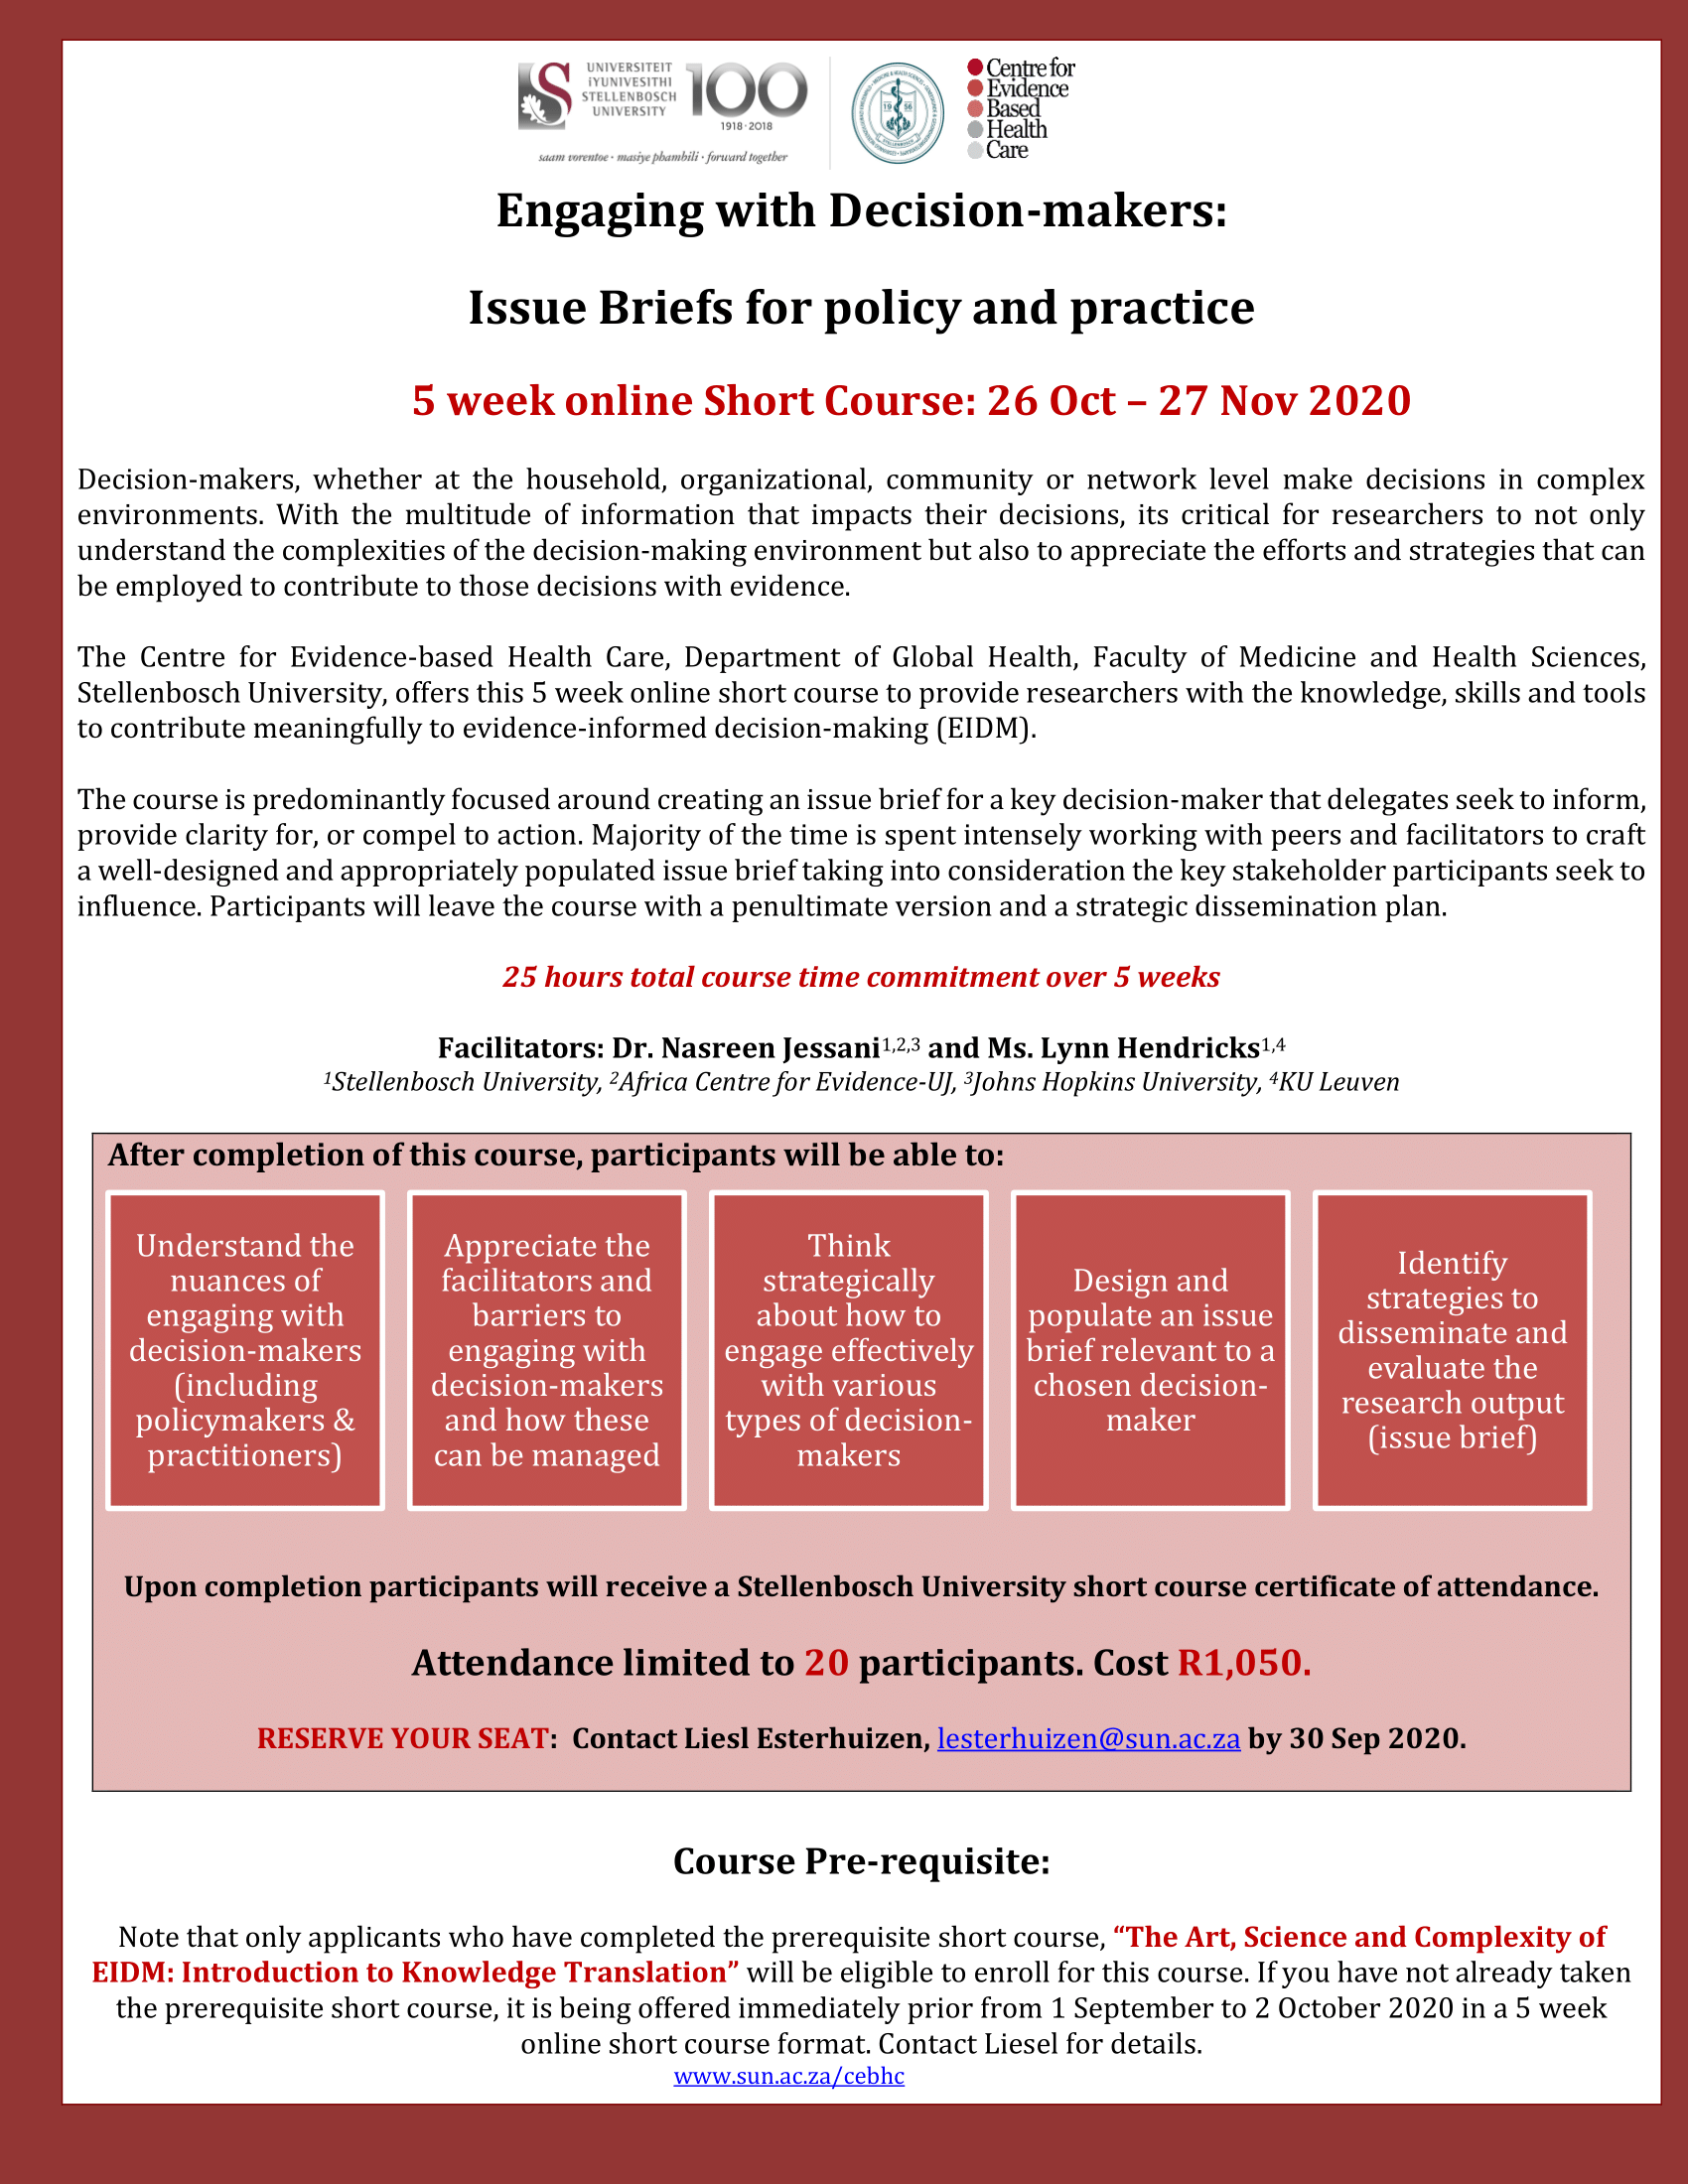 Engaging with decision-makers: Issue briefs for policy and practice